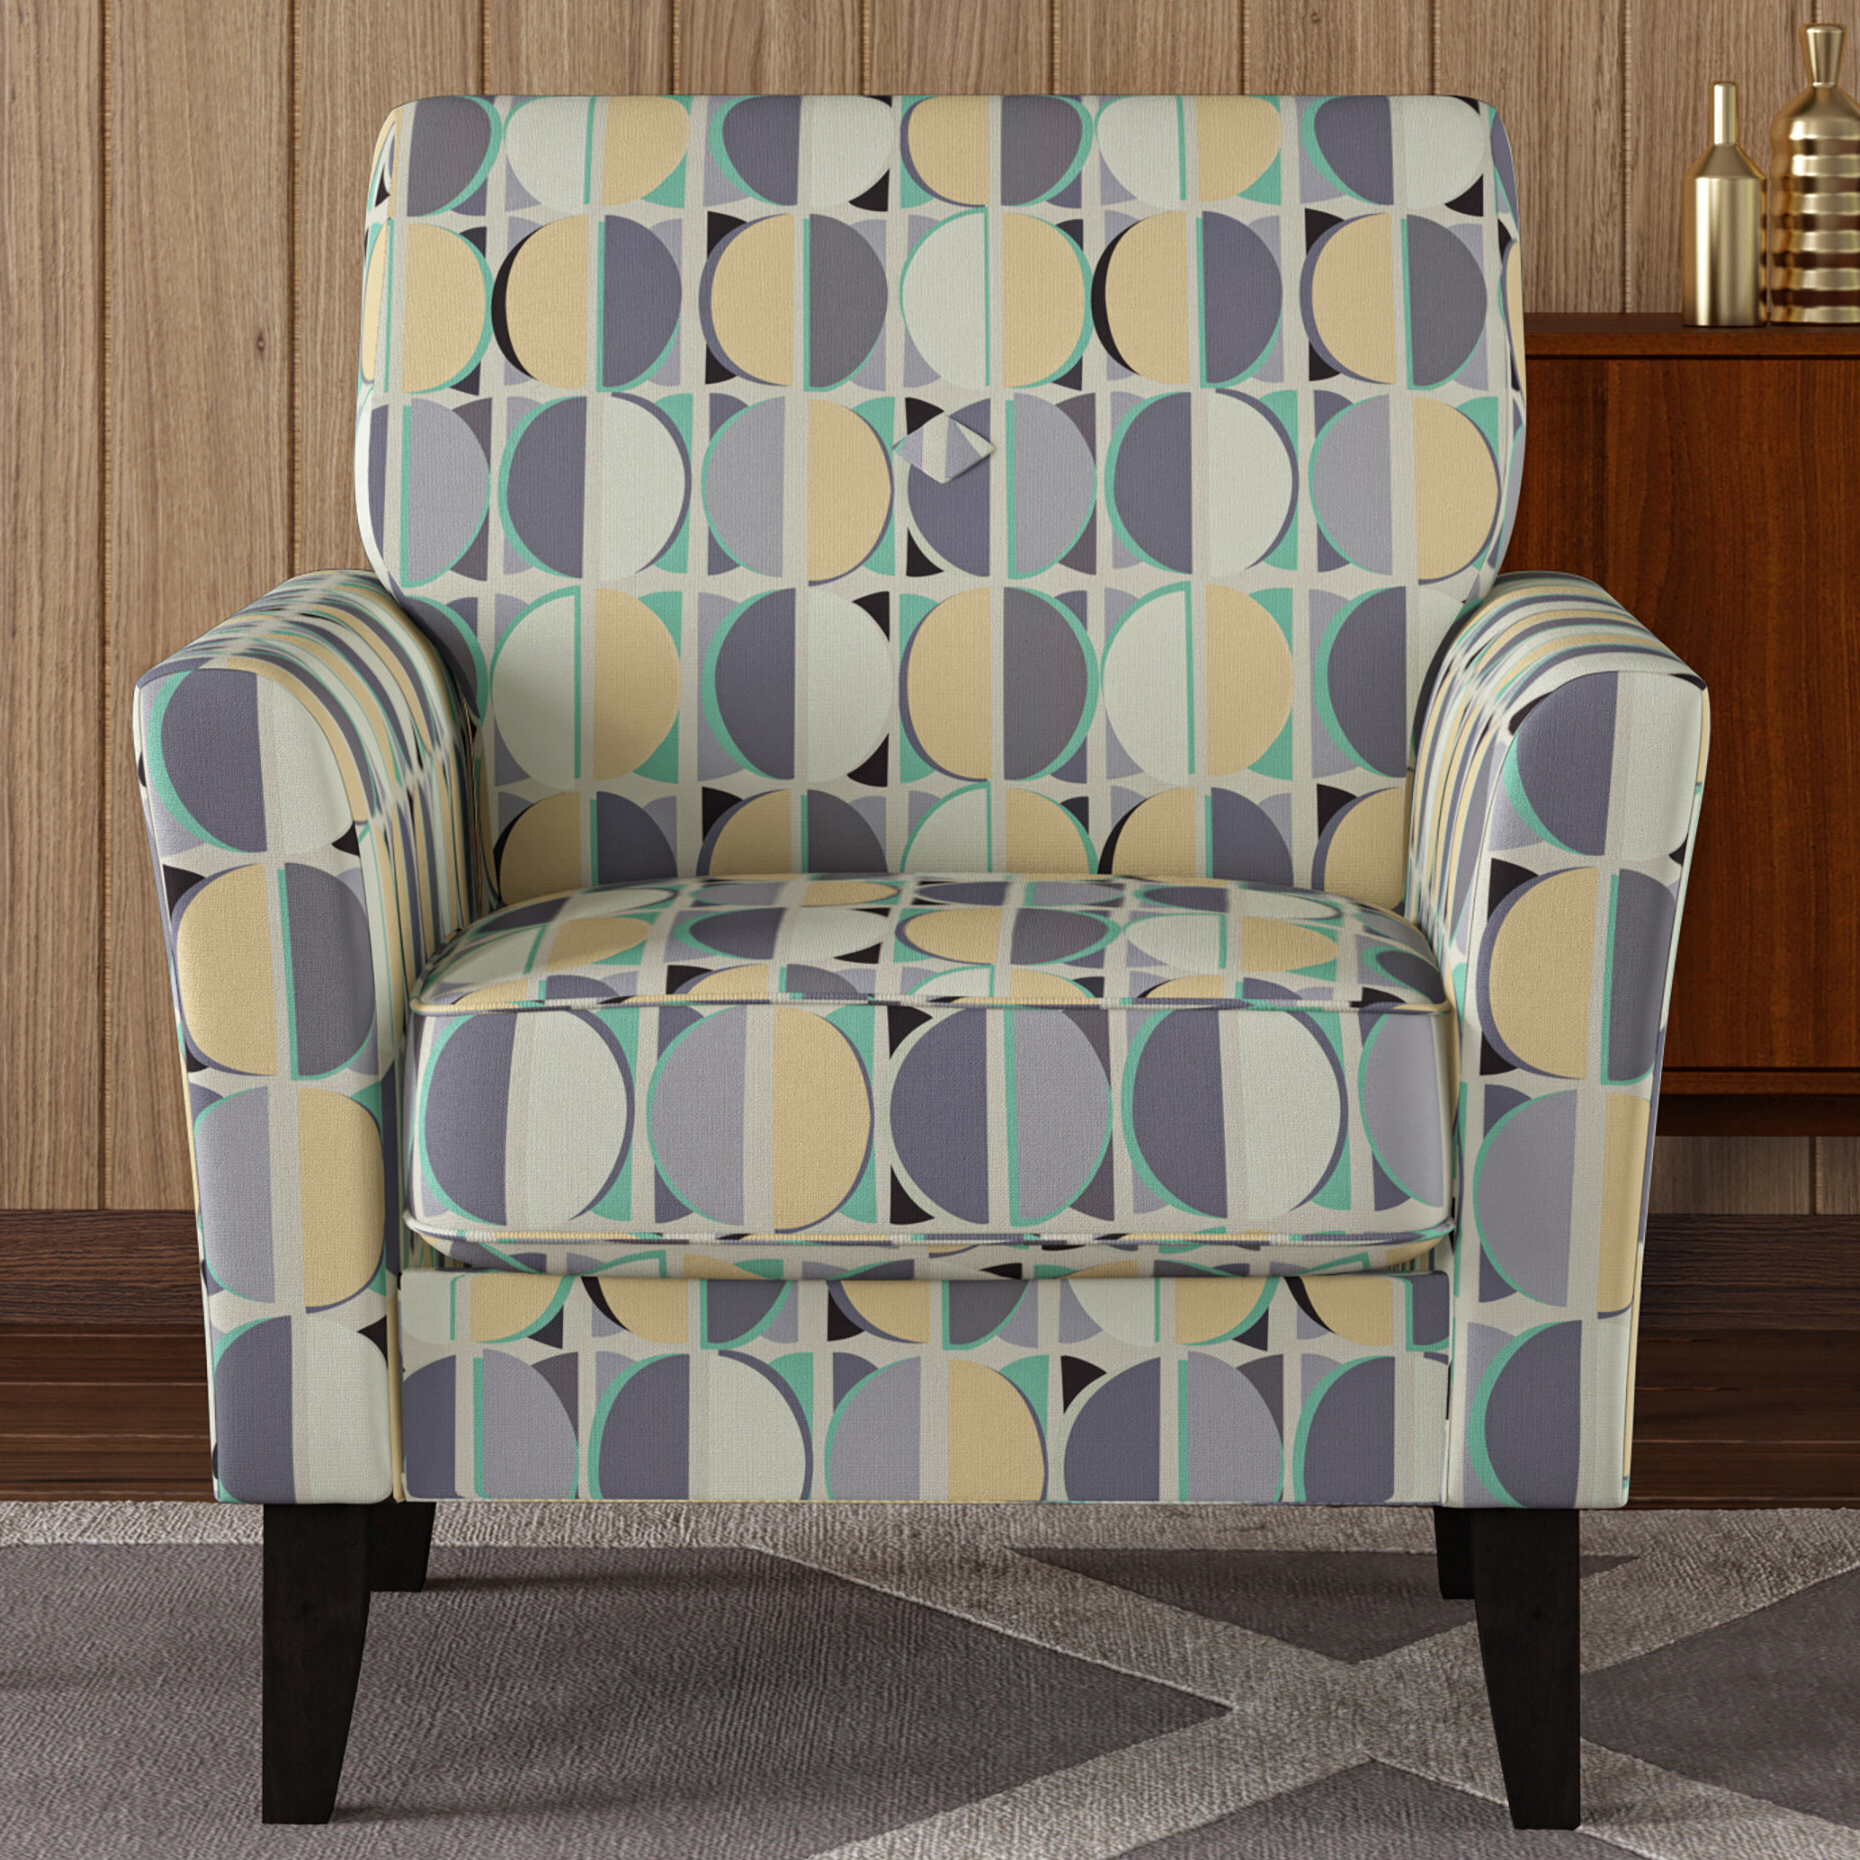 Purple Removable Cushions Accent Chairs You'll Love In 2021 Regarding Well Known Deer Trail Armchairs (View 4 of 20)